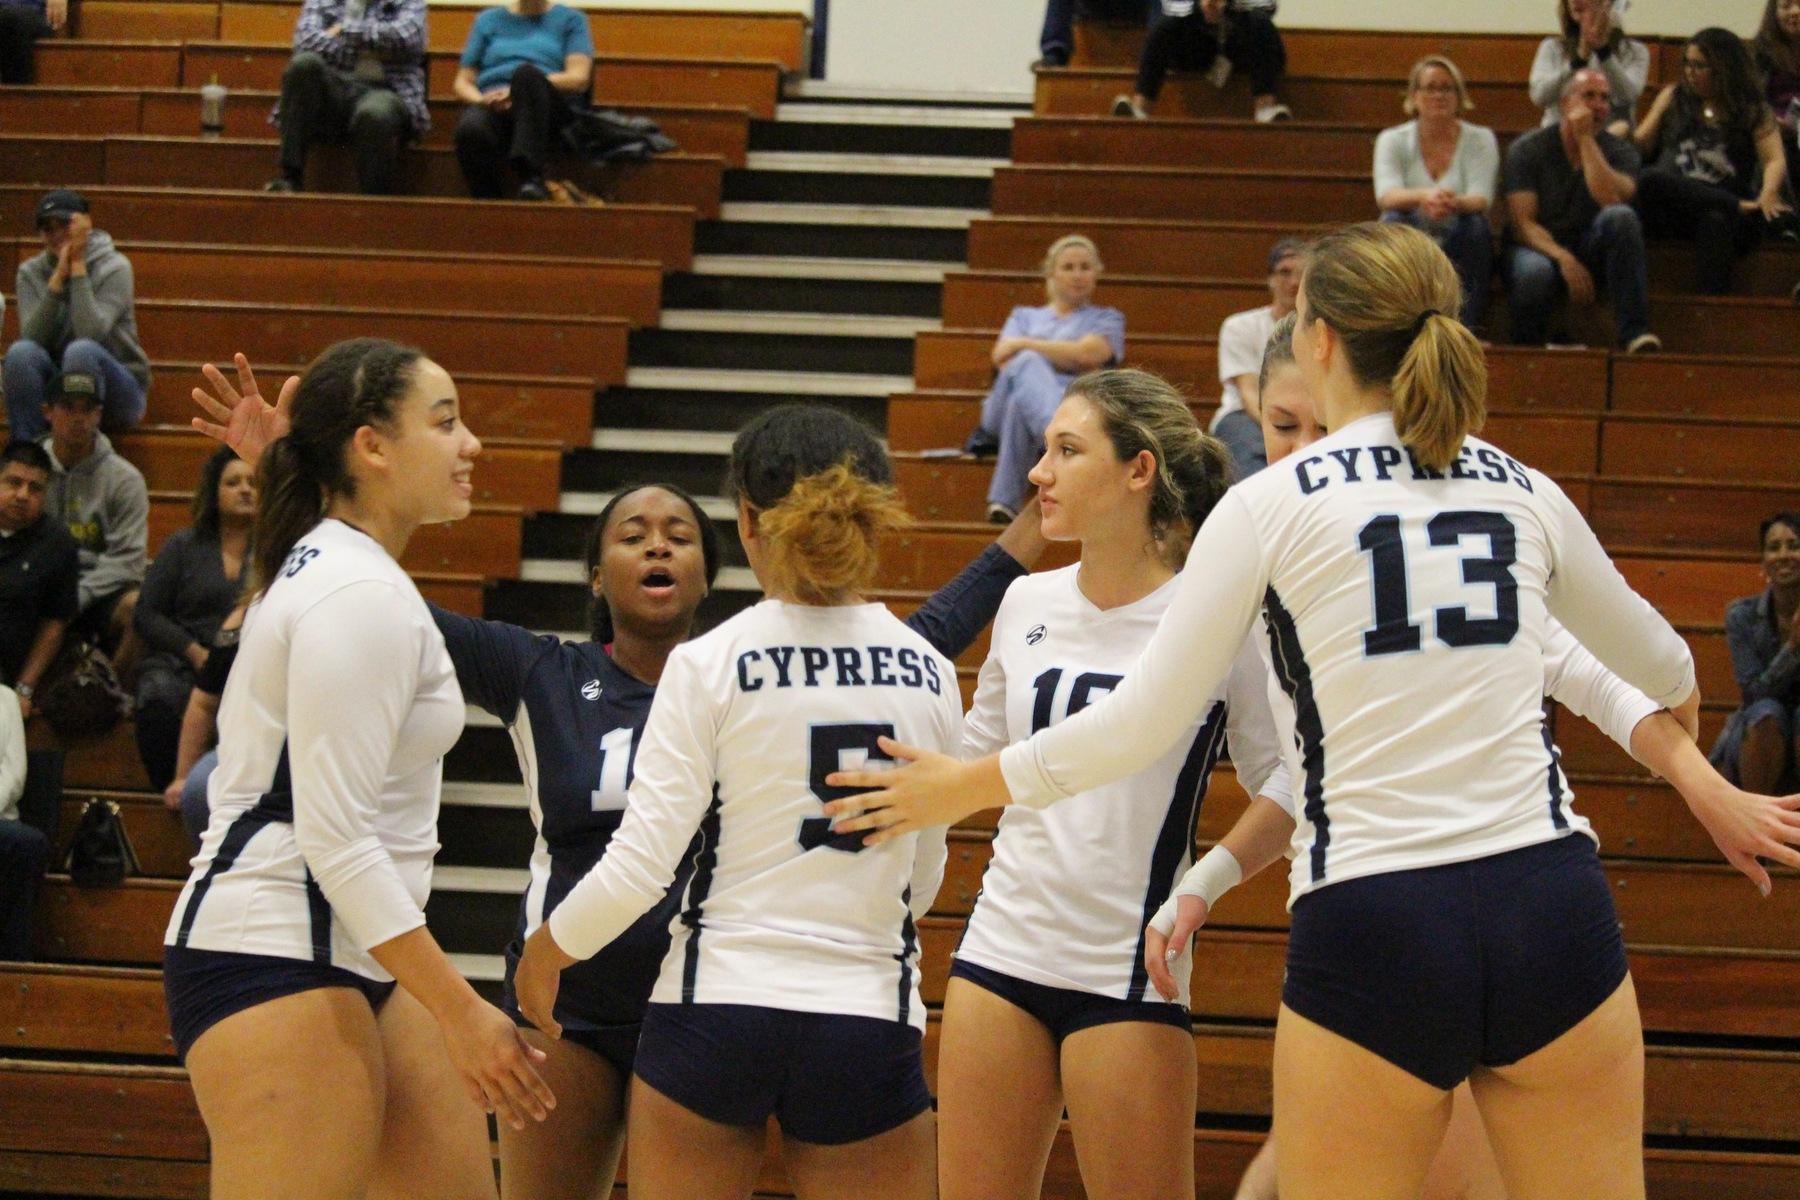 No. 18 Cypress Sweeps No. 21 Golden West, 3-0